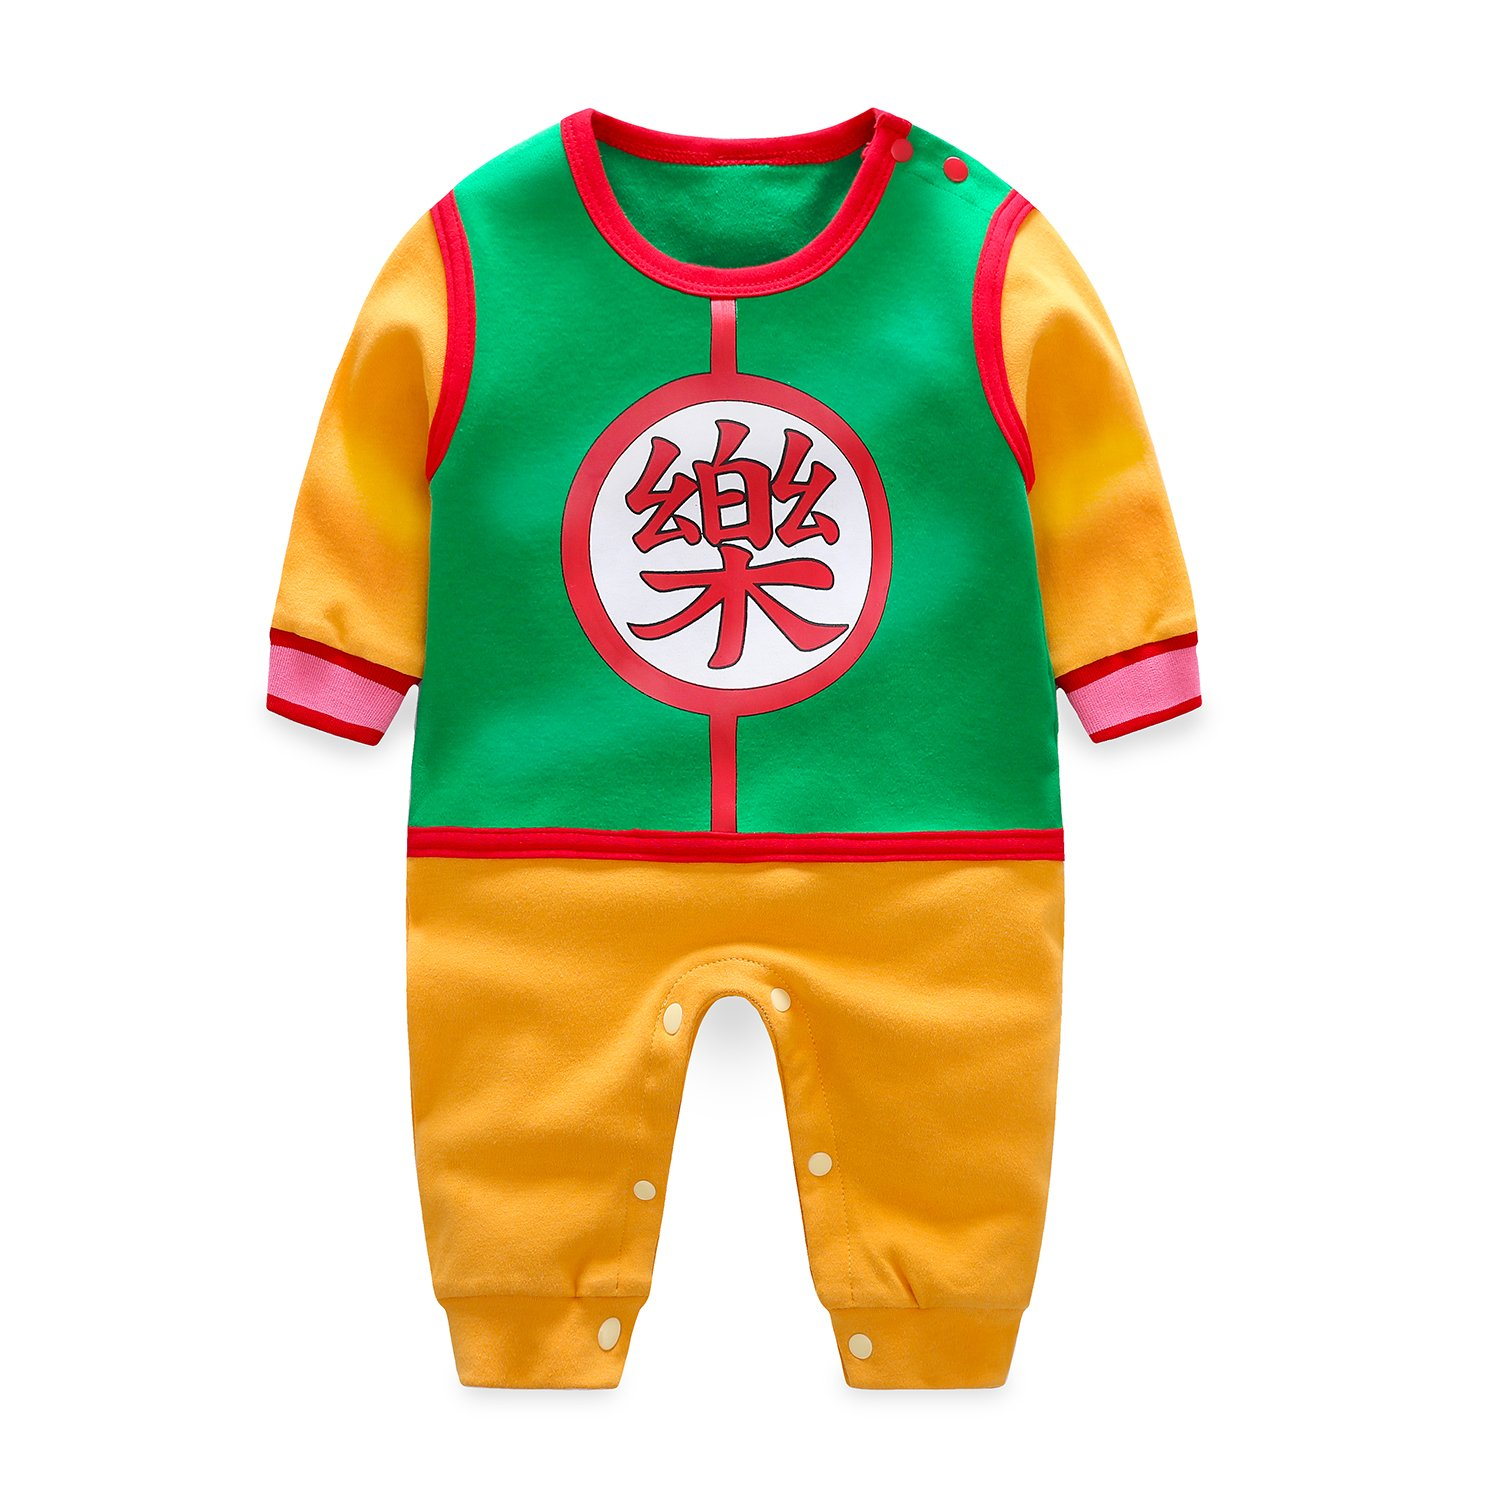 Newborn Baby Boy Girl Dragon Ball Cute Romper Jumpsuit Bodysuit Clothes Outfit Cosplay Playsuit